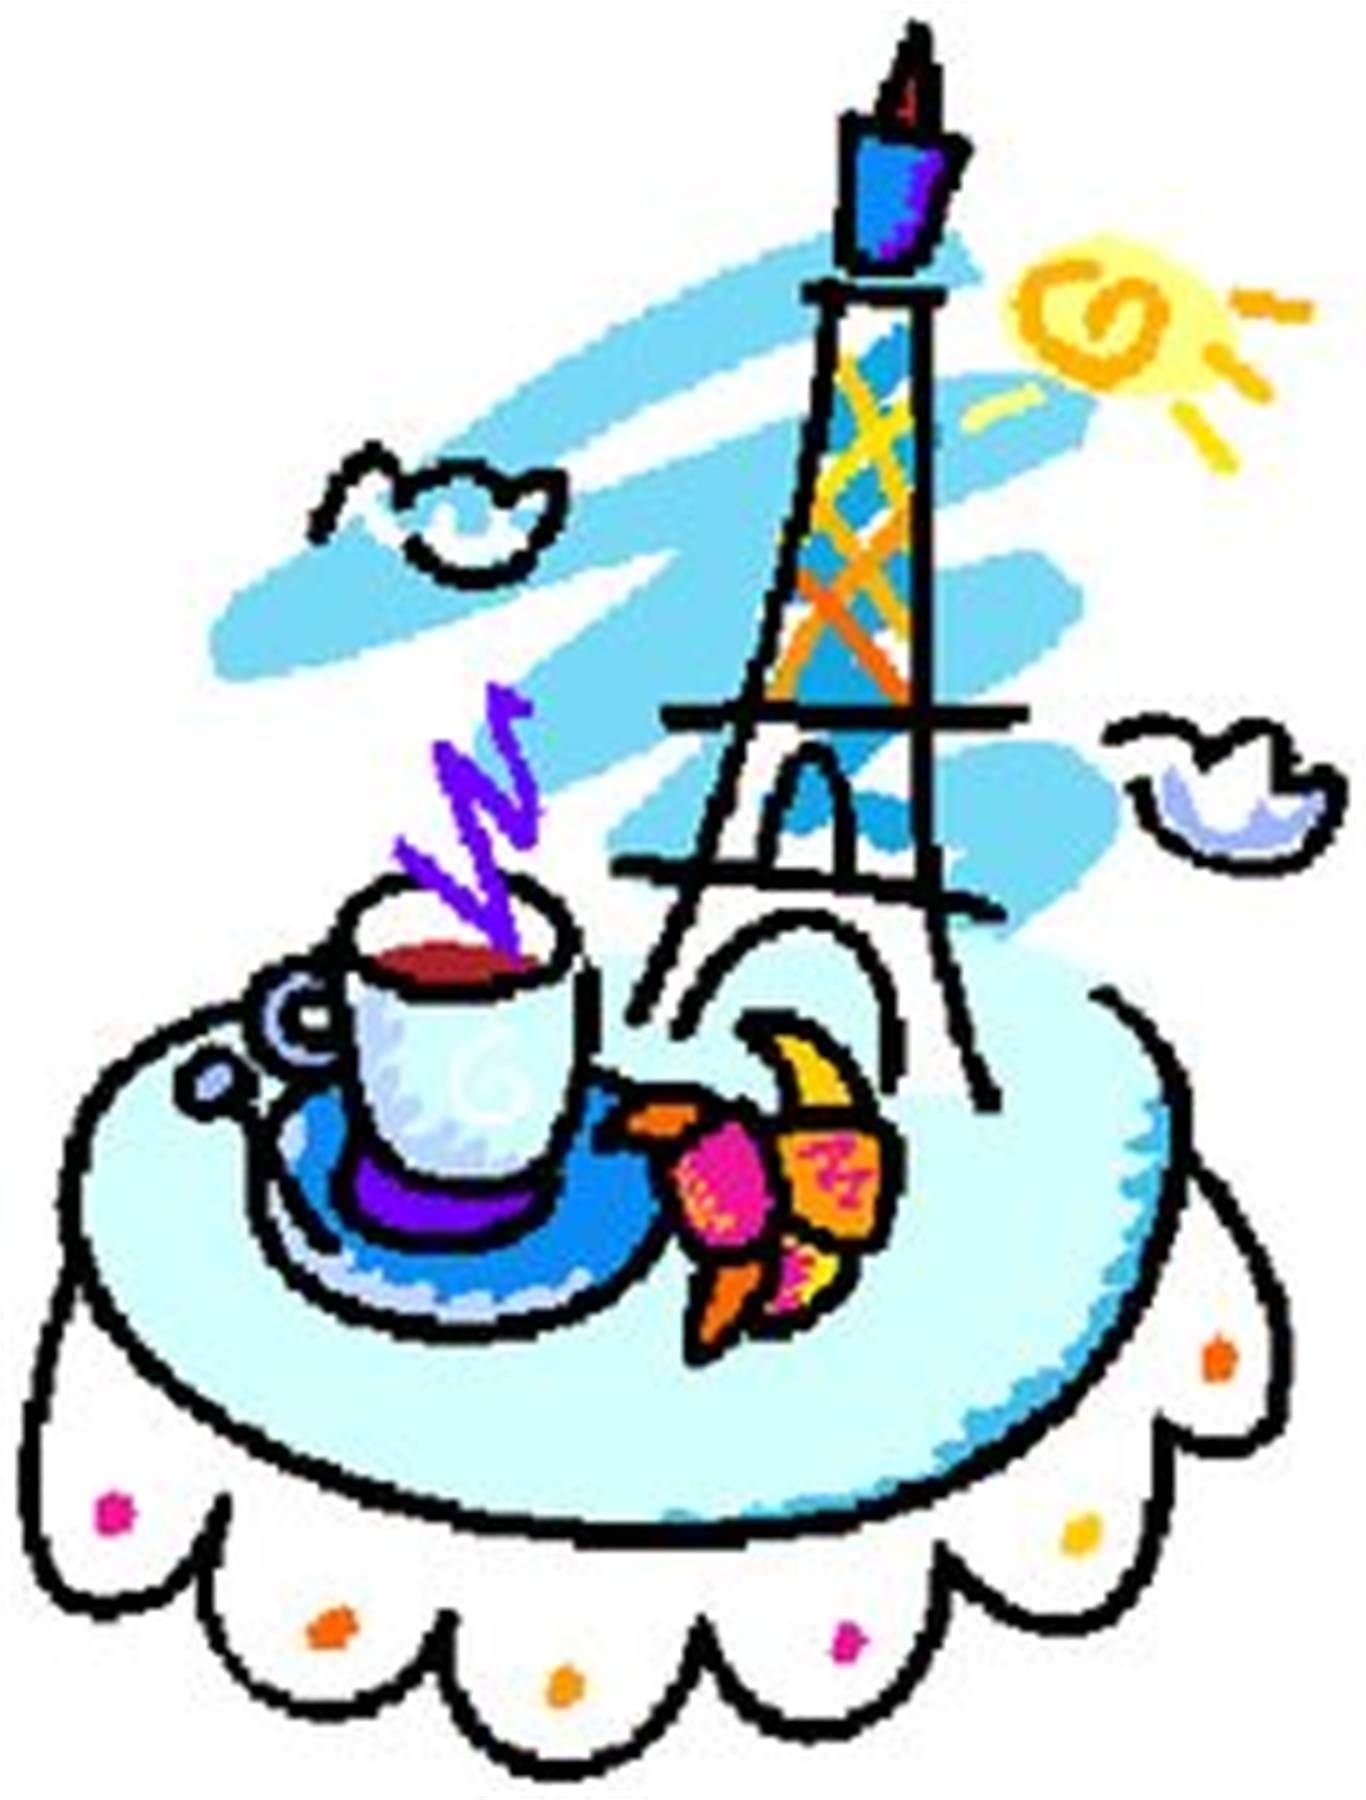 Cafe clipart french cafe. Vive le francais may